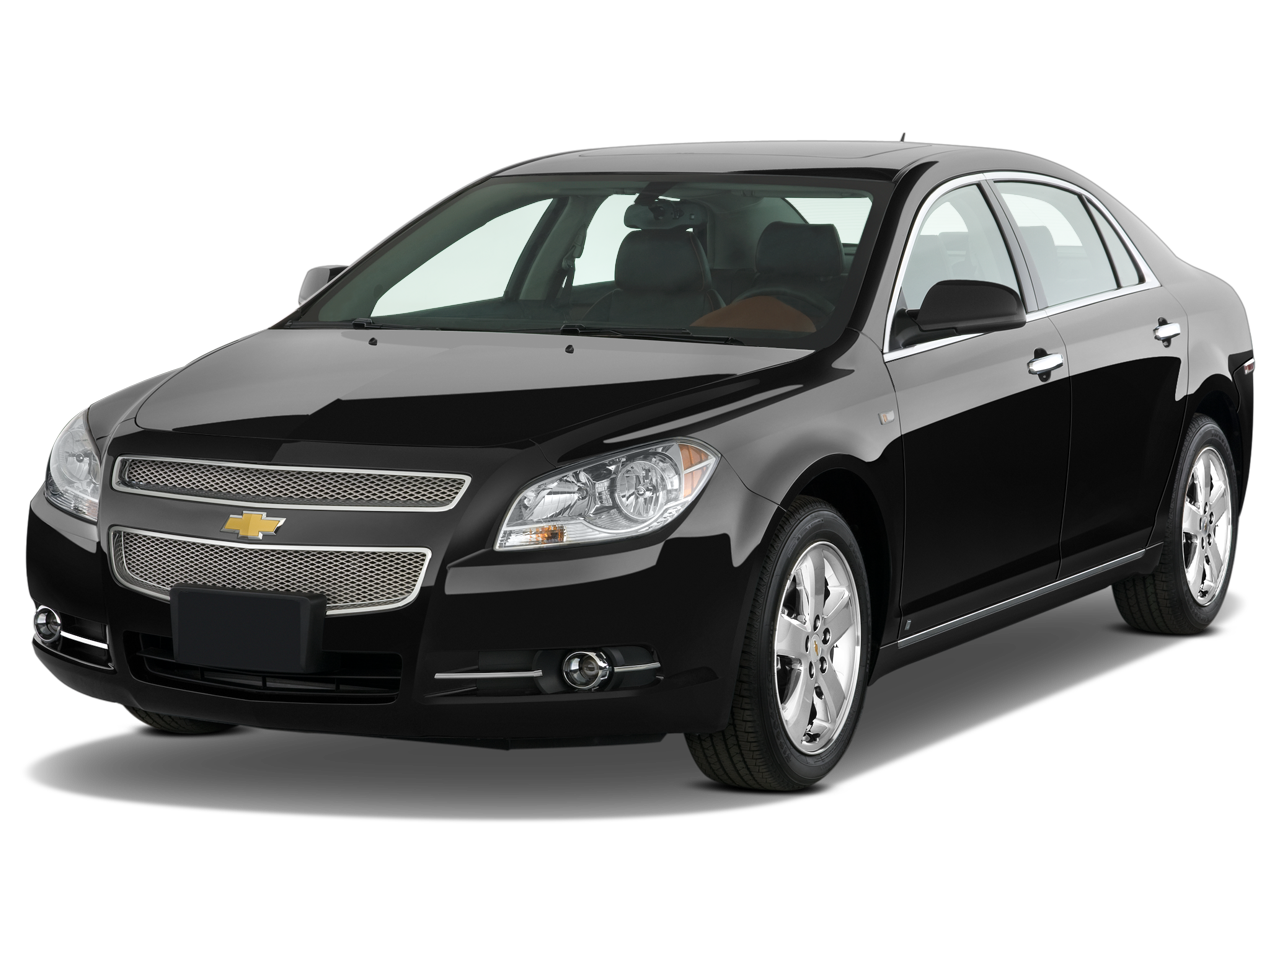 2009 chevy malibu ltz fuel efficient news car features. Black Bedroom Furniture Sets. Home Design Ideas